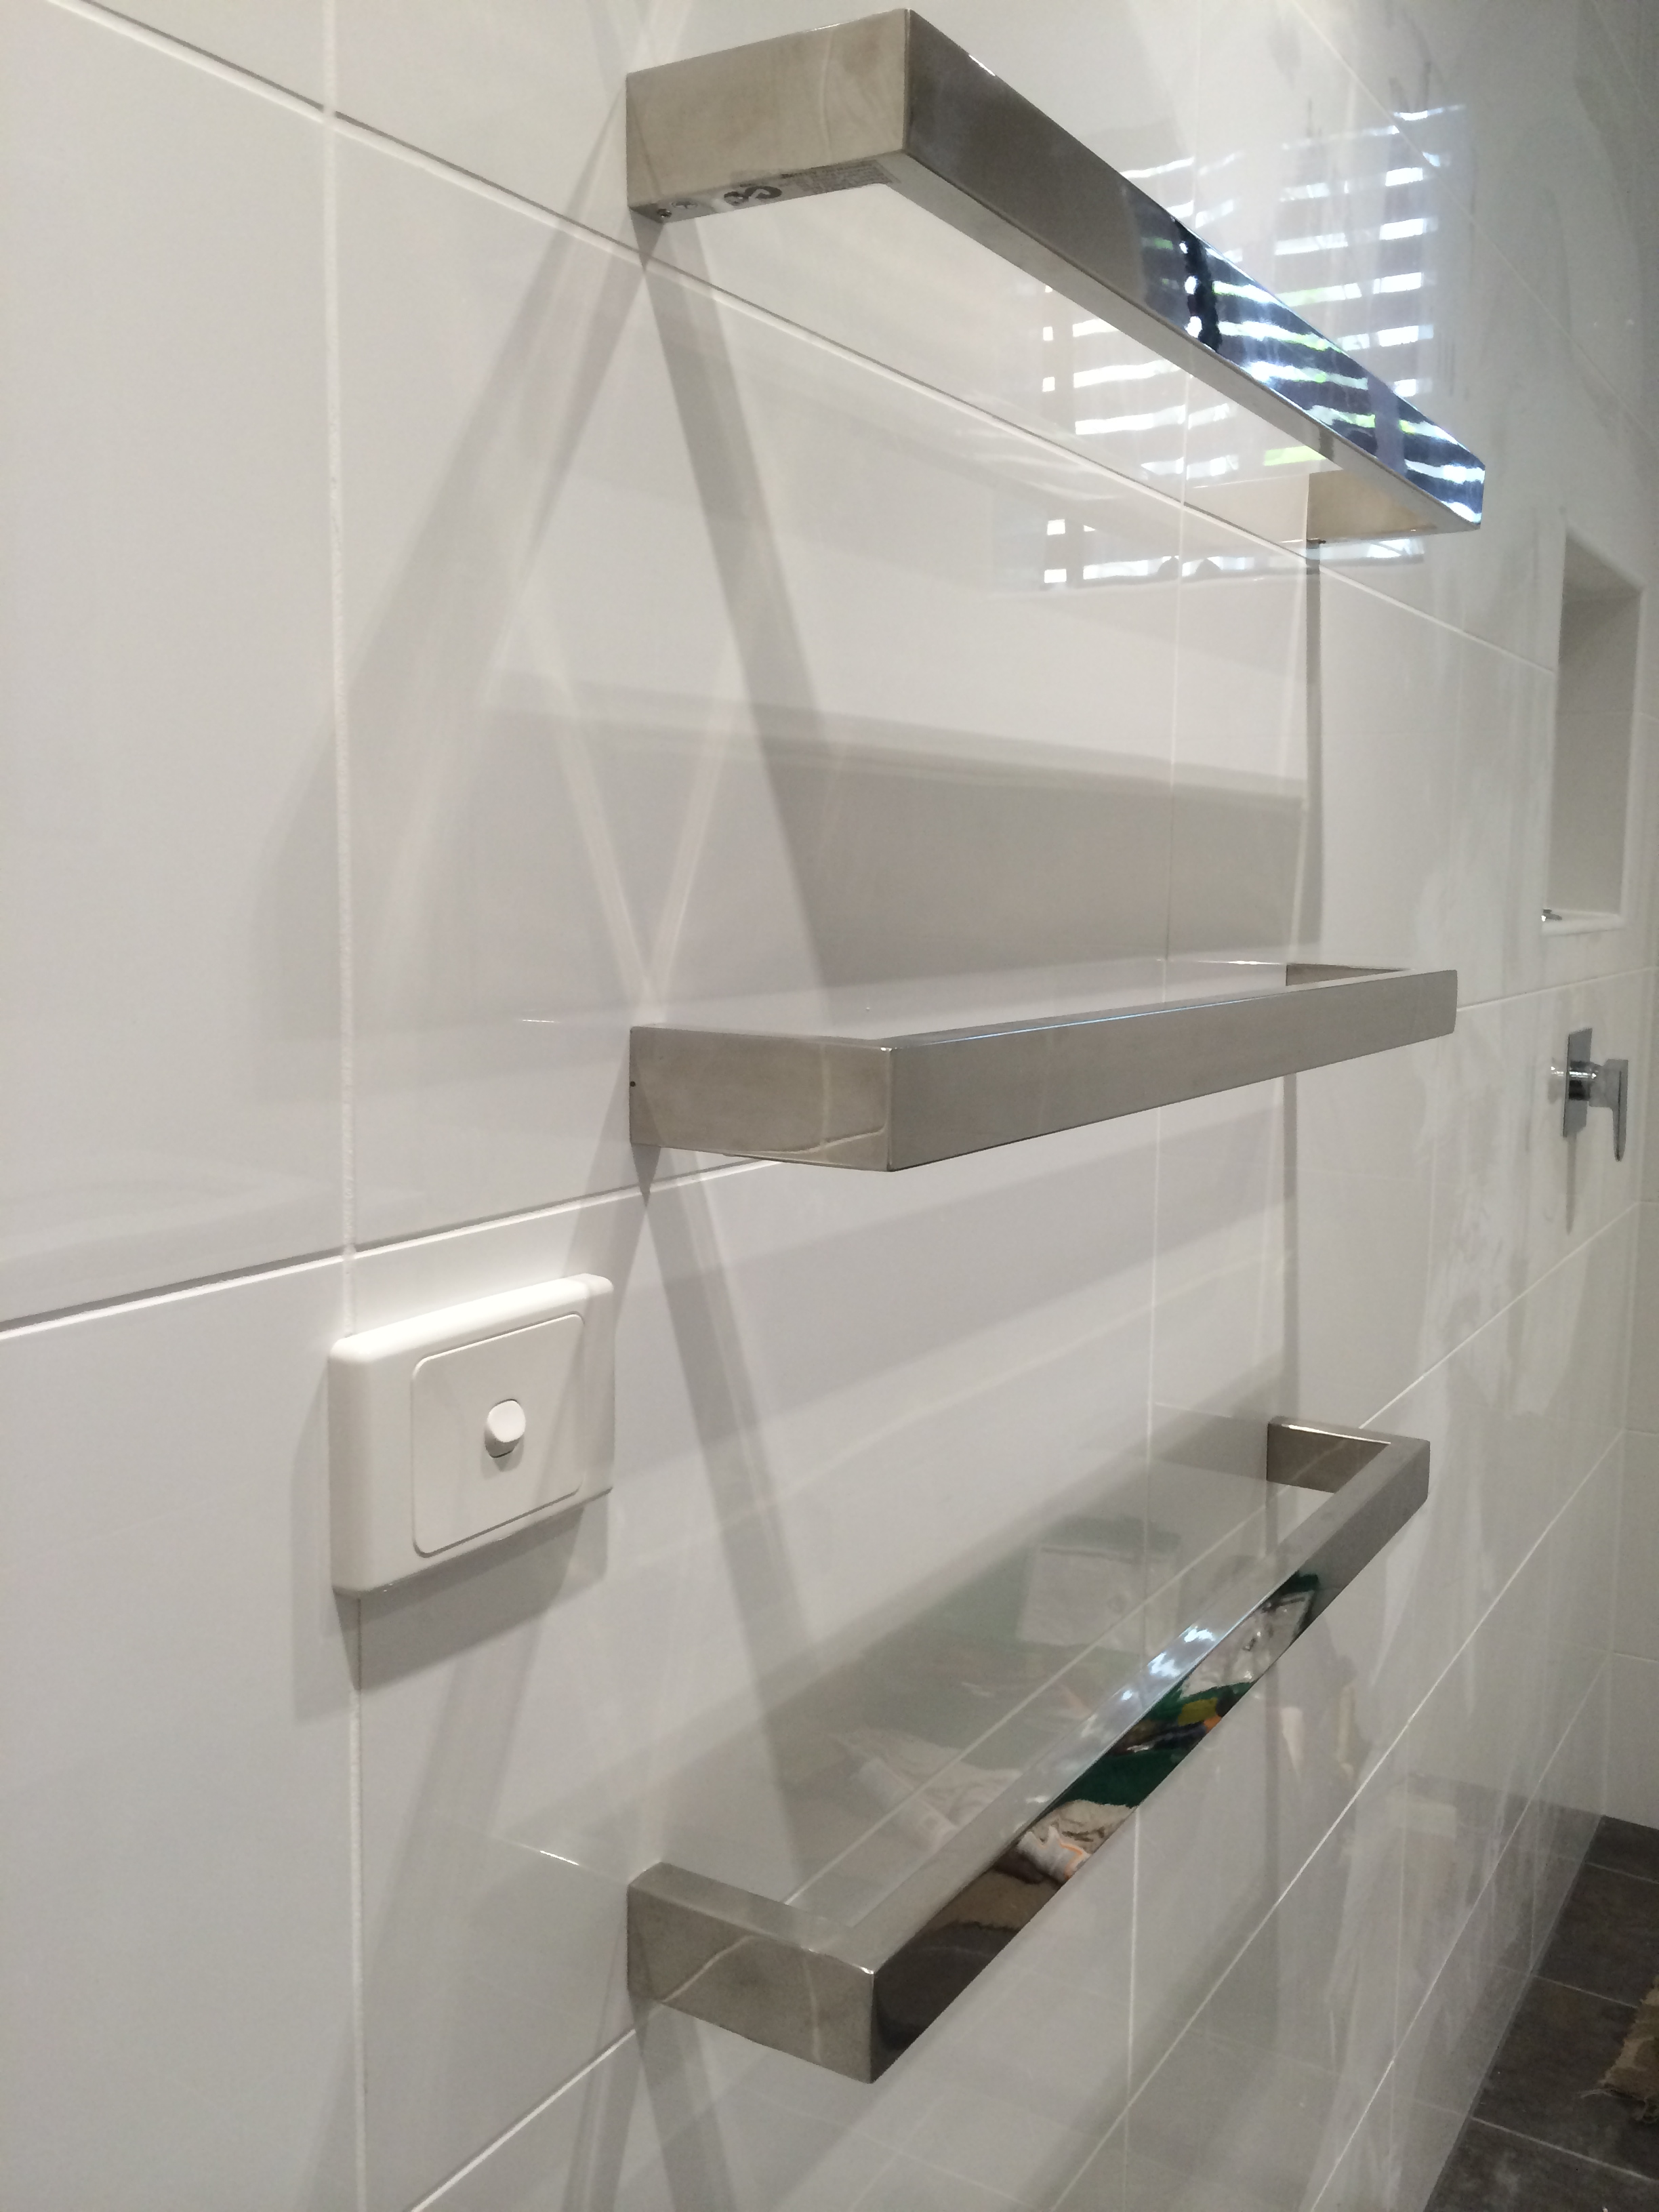 Kitchen Bathroom Laundry Electrician In Melbourne Proelement Electrical Wiring Rules Bathrooms Electric Heated Towel Rail Installation Alterations And Additions Provided For This Renovation